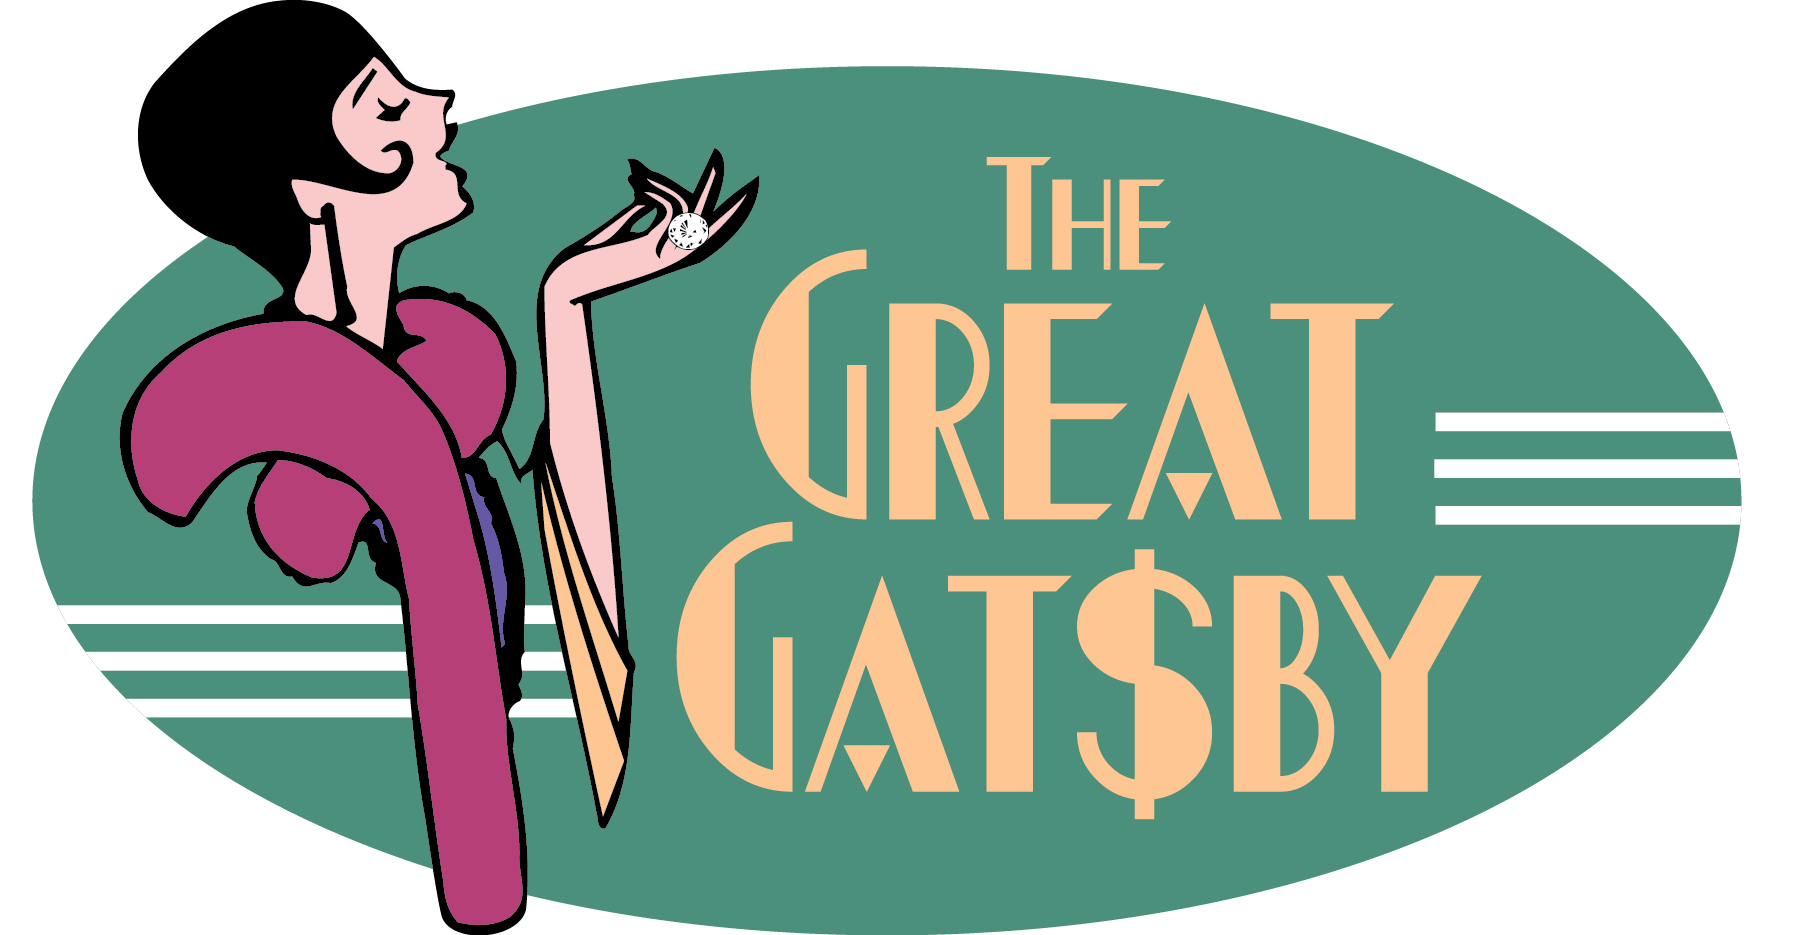 Clipart gatsby picture download Great gatsby clipart 9 » Clipart Station picture download